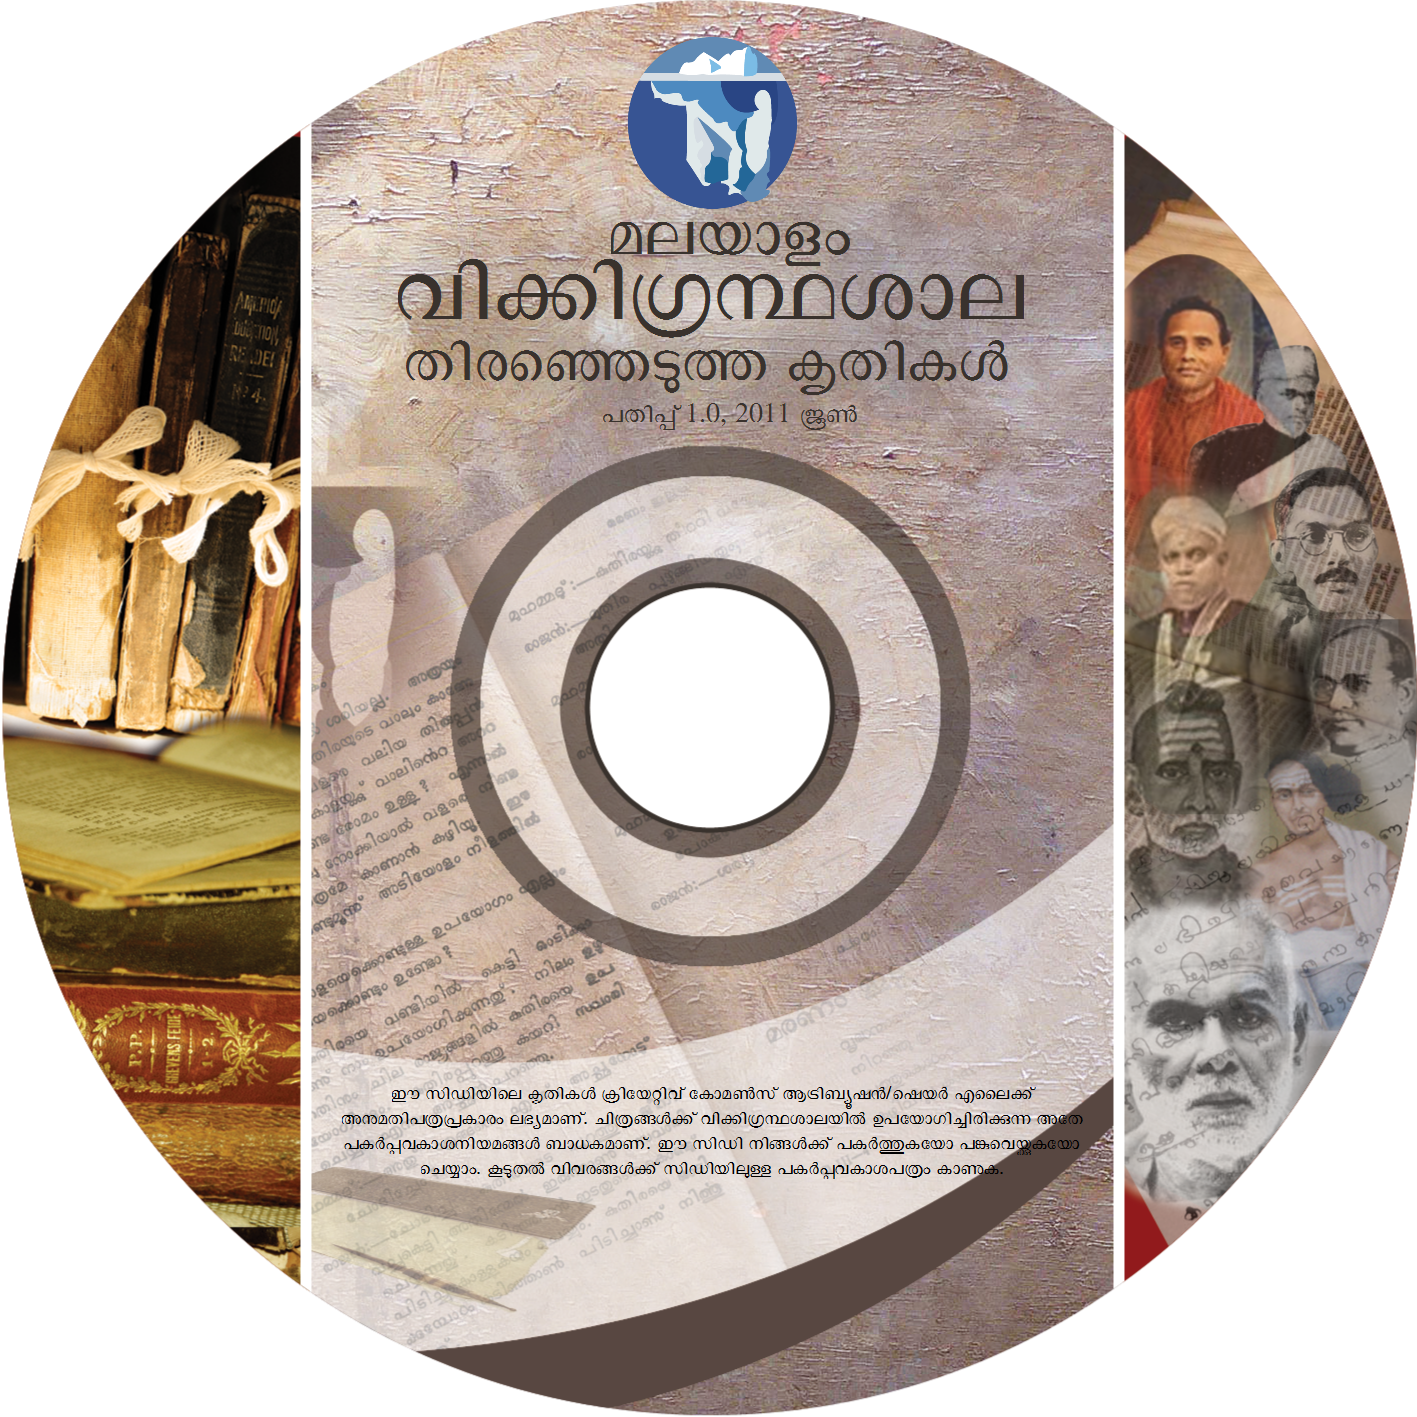 Malayalam Wikisource CD sticker